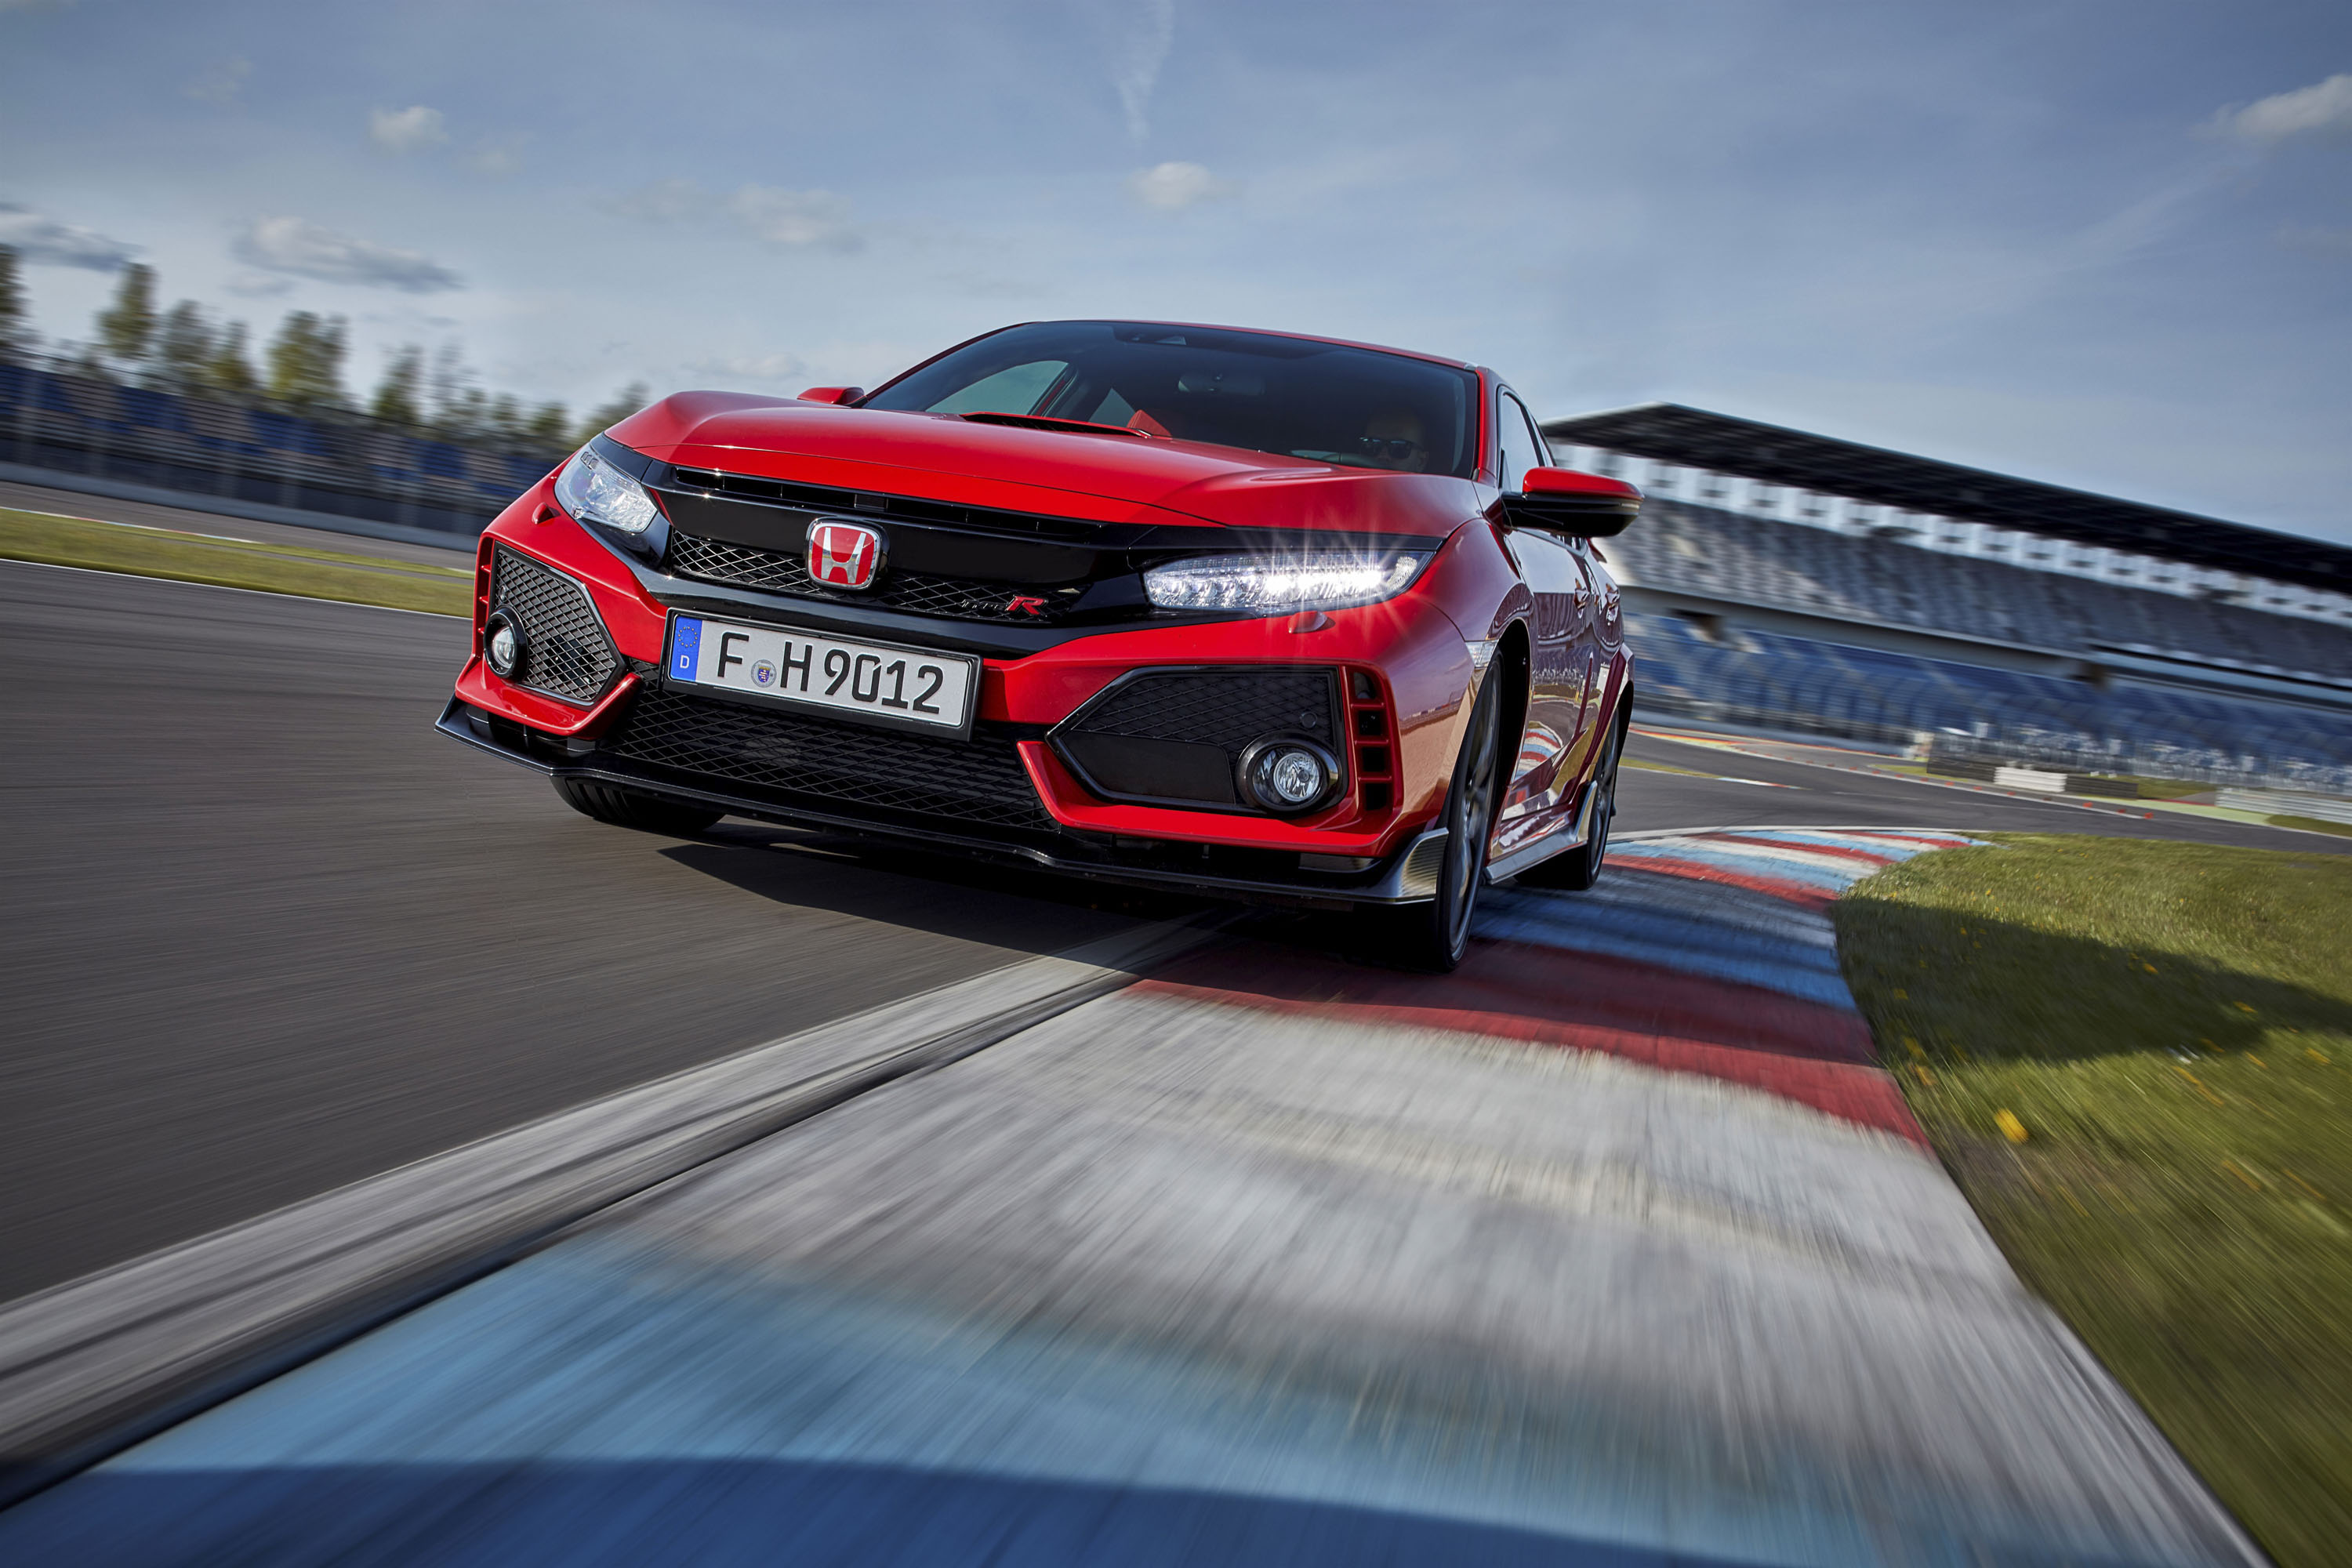 The Honda Civic Type R Smashes New Record This Time At Silverstone